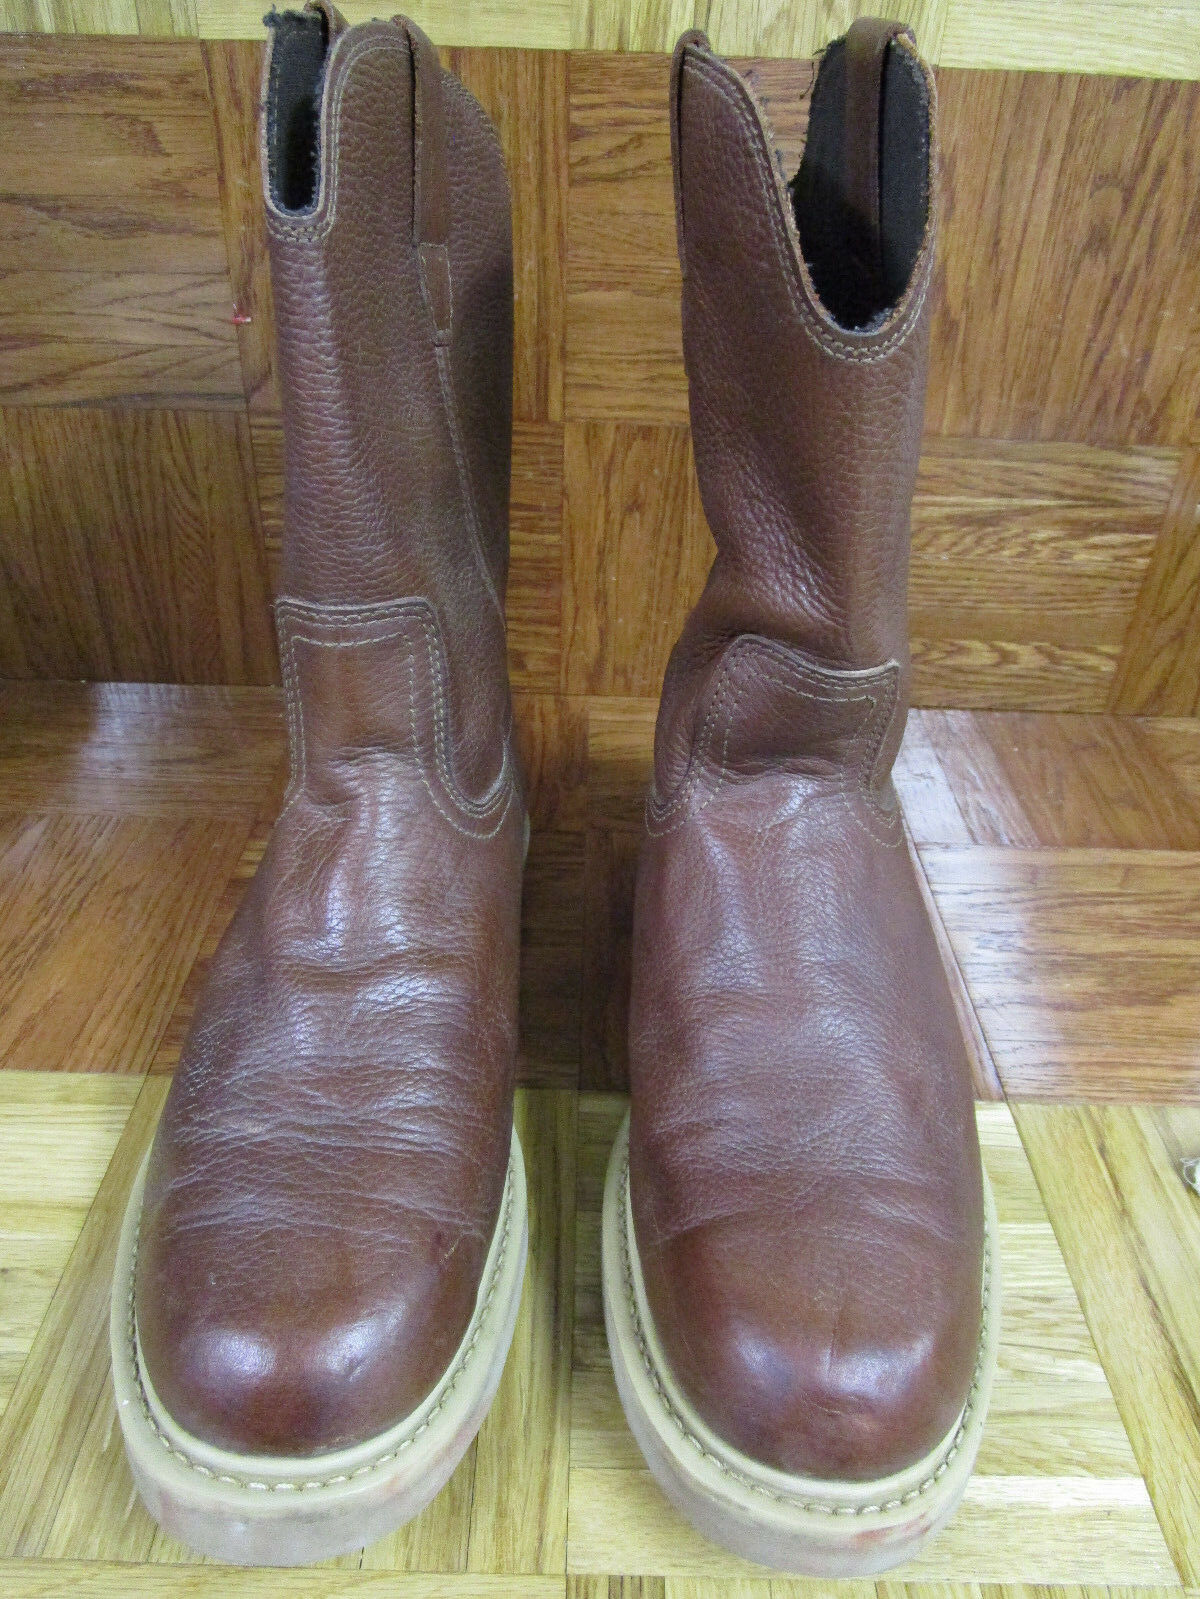 American Worker Men's Round Toe Work Boots Size 12 D